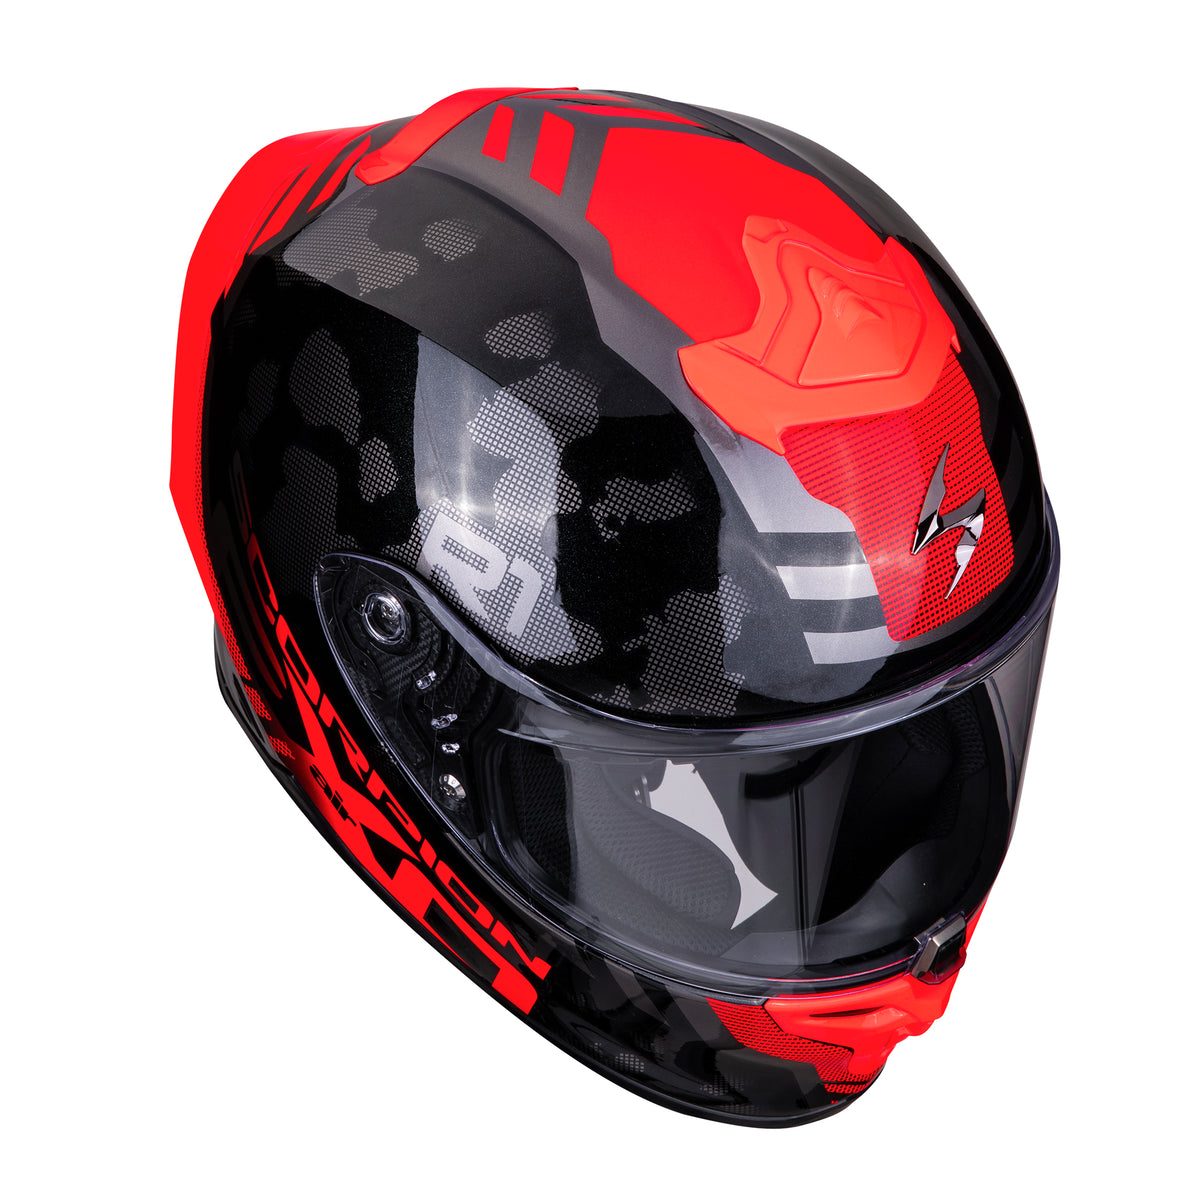 R1 Air - Ogi, Helmet, Scorpion Exo - Averys Motorcycles